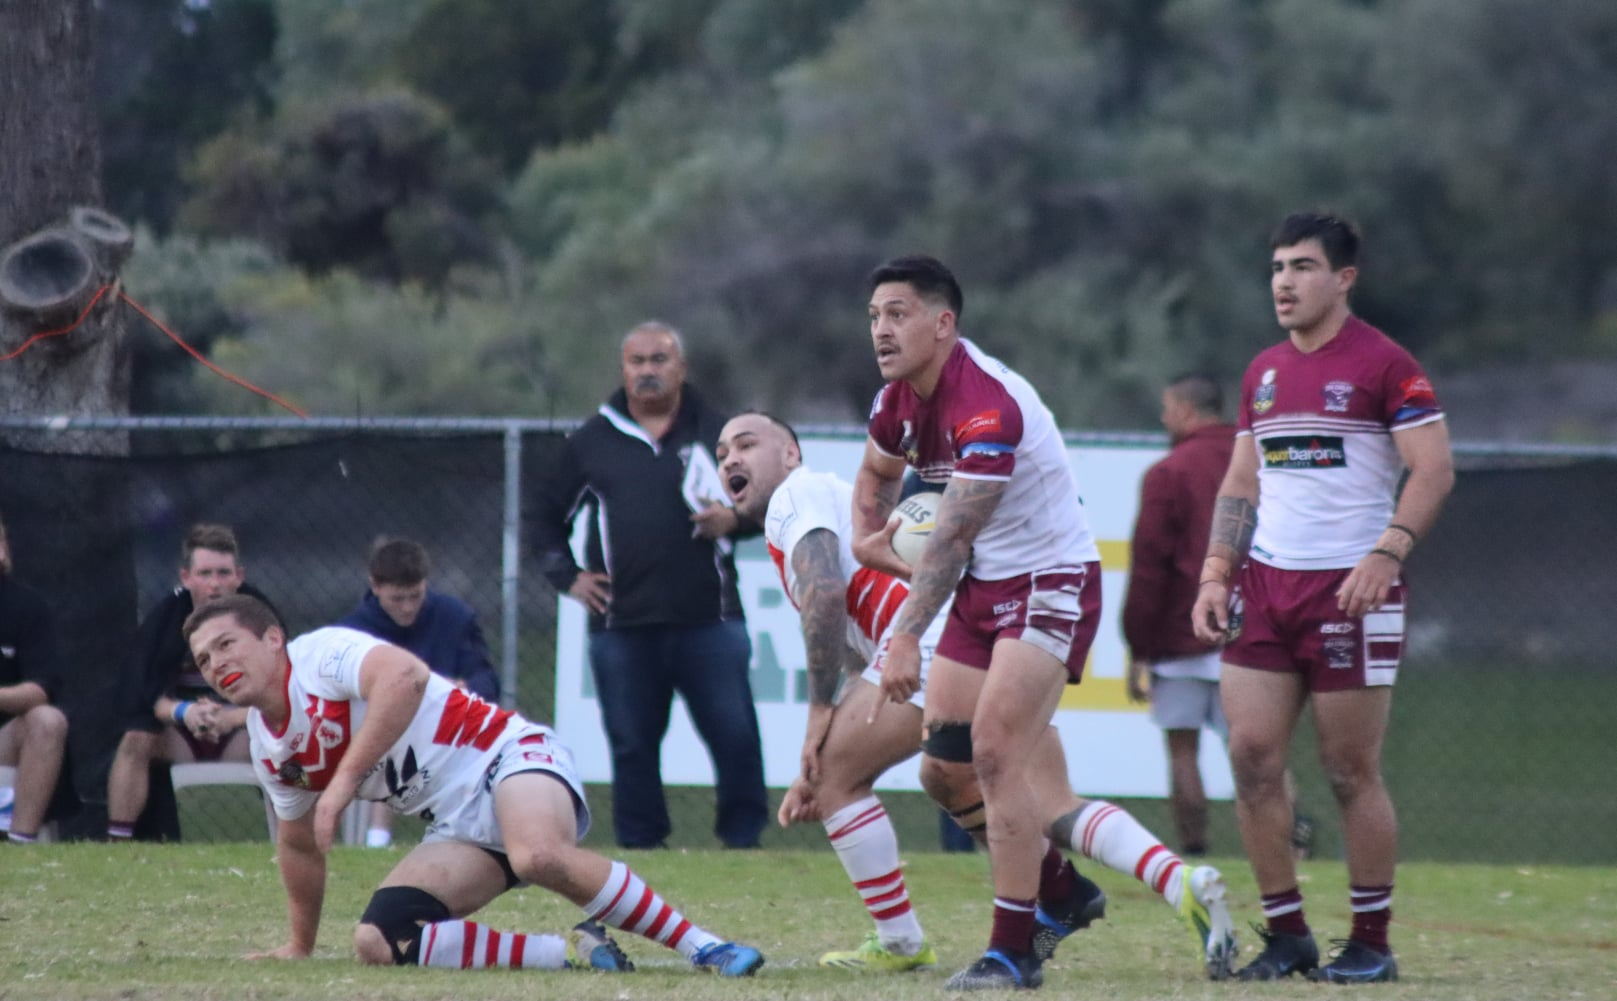 North Beach and Joondalup to battle it out for spot in NRL WA Men's Grand Final